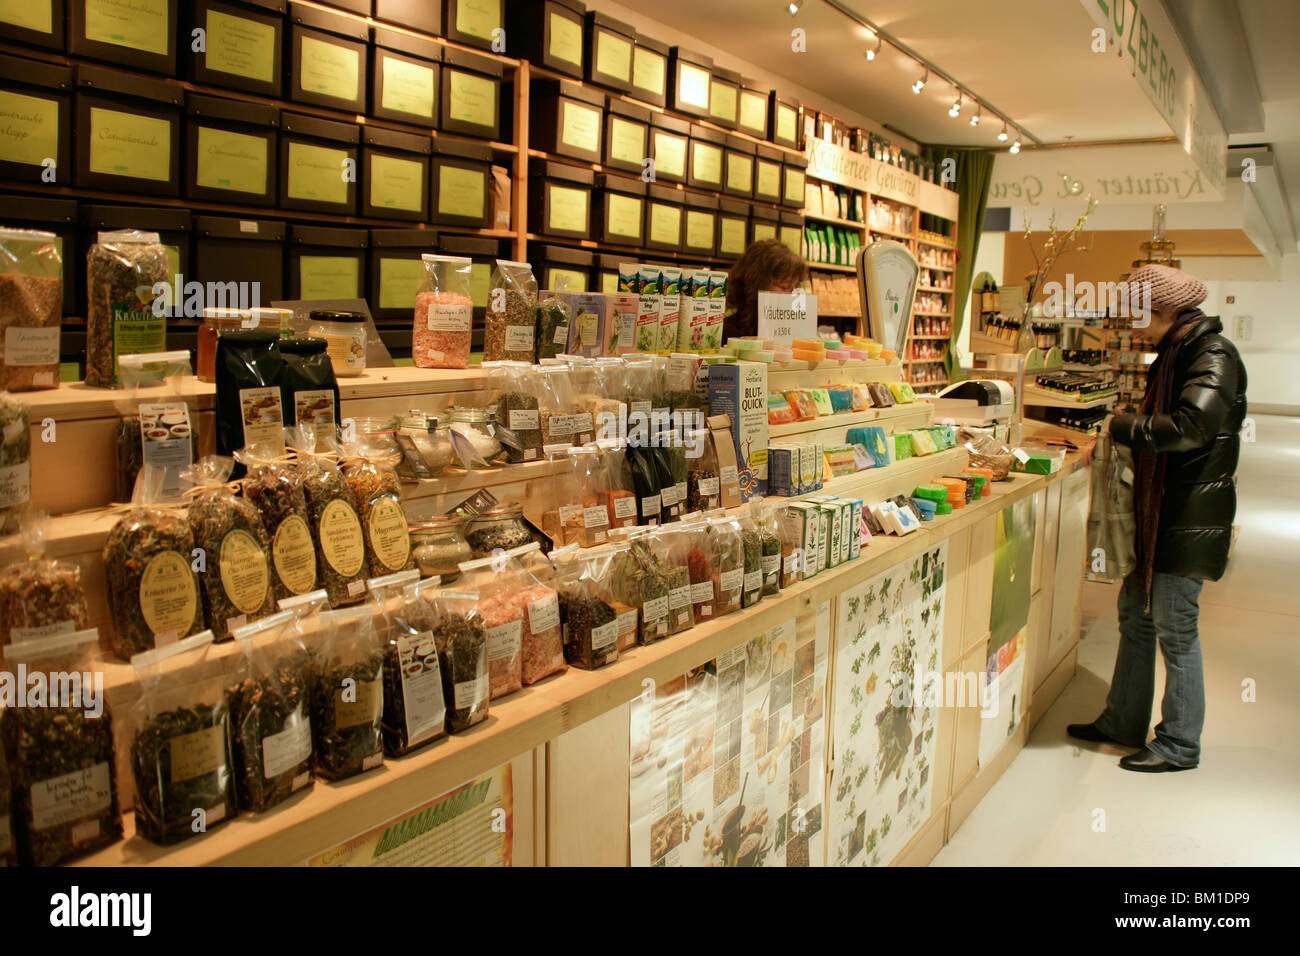 Stall selling herbs at the Marheineke Markethall in western Kreuzberg, Berlin, Germany - Stock Image